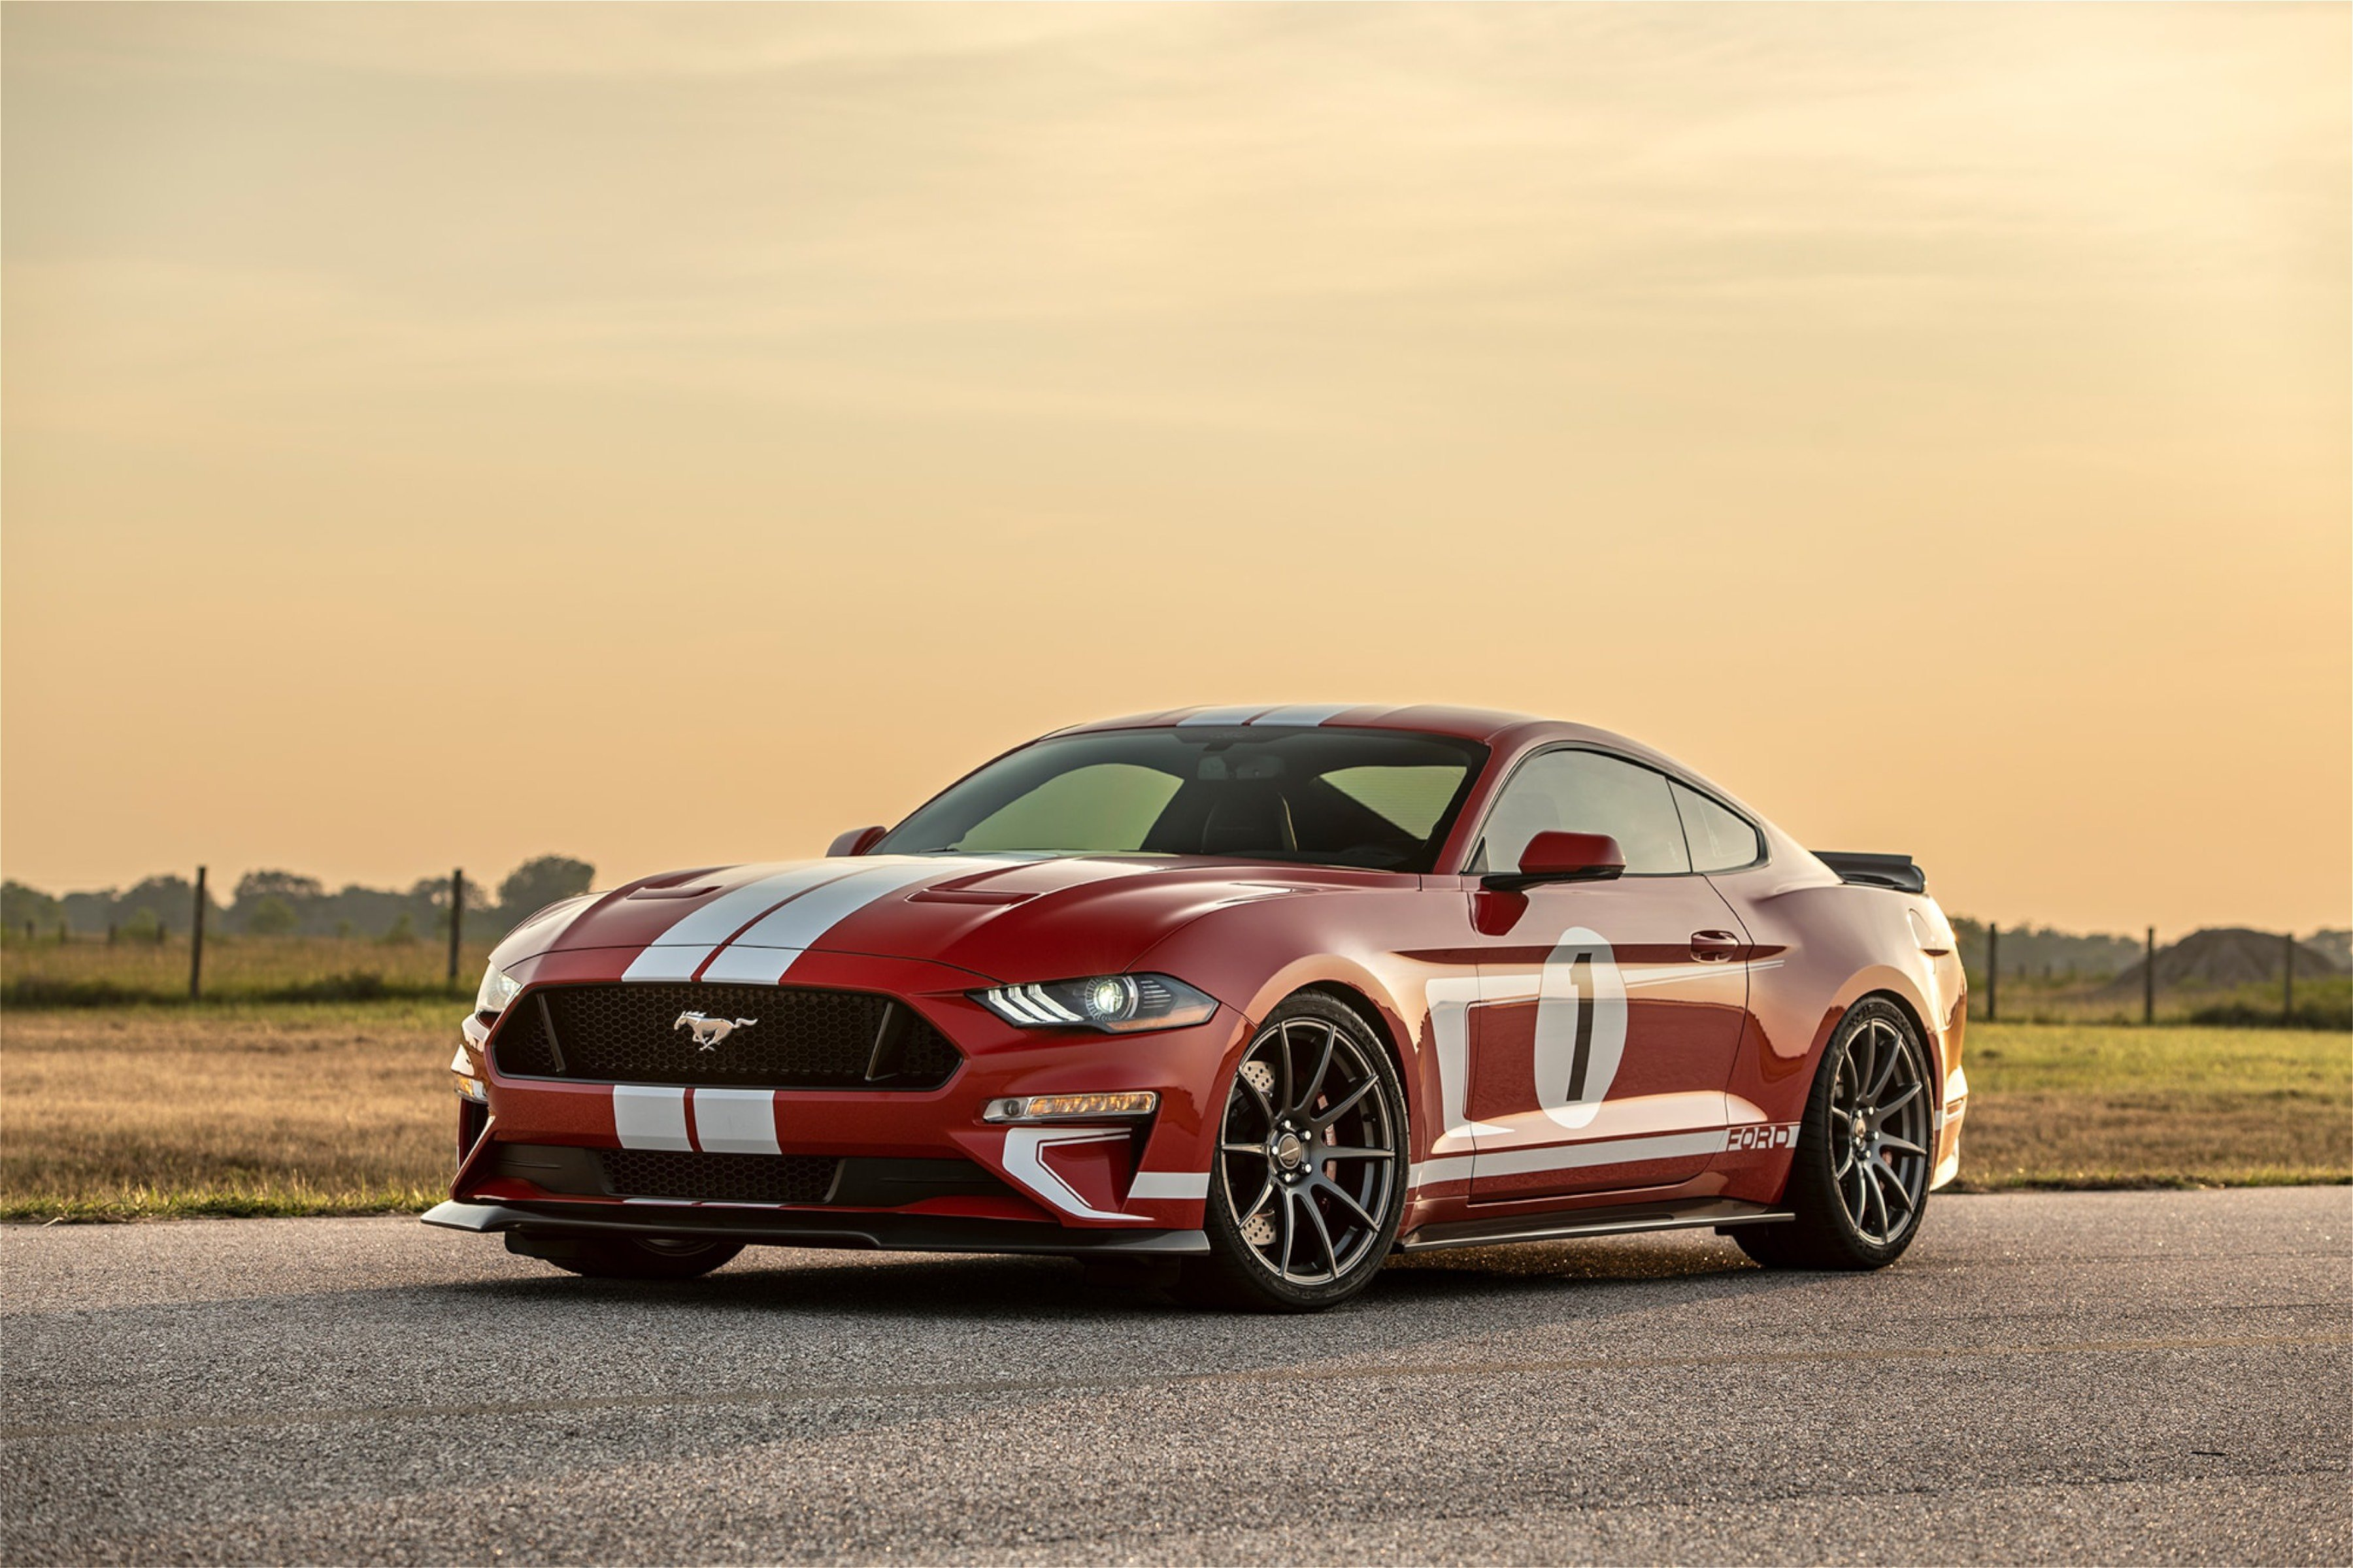 Hennessy Performance Is Set To Create A Limited Run Of Heritage Edition  Mustangs That Deliver  Horsepower Courtesy Of A   Liter Whipple Gen